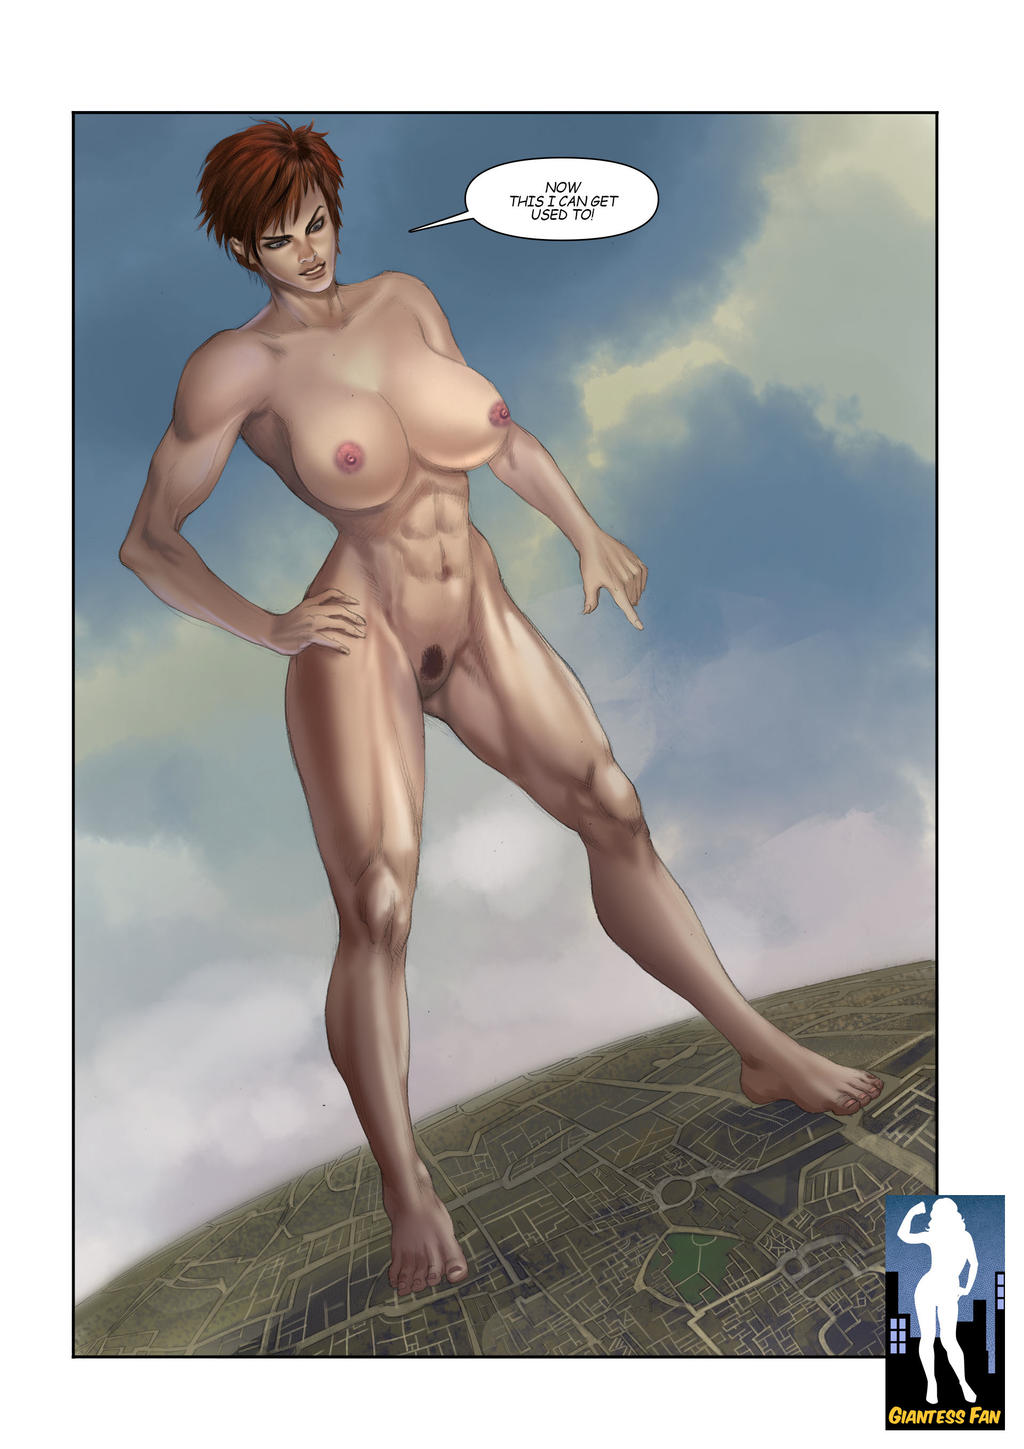 Giantess fan goddess adbc porn comics